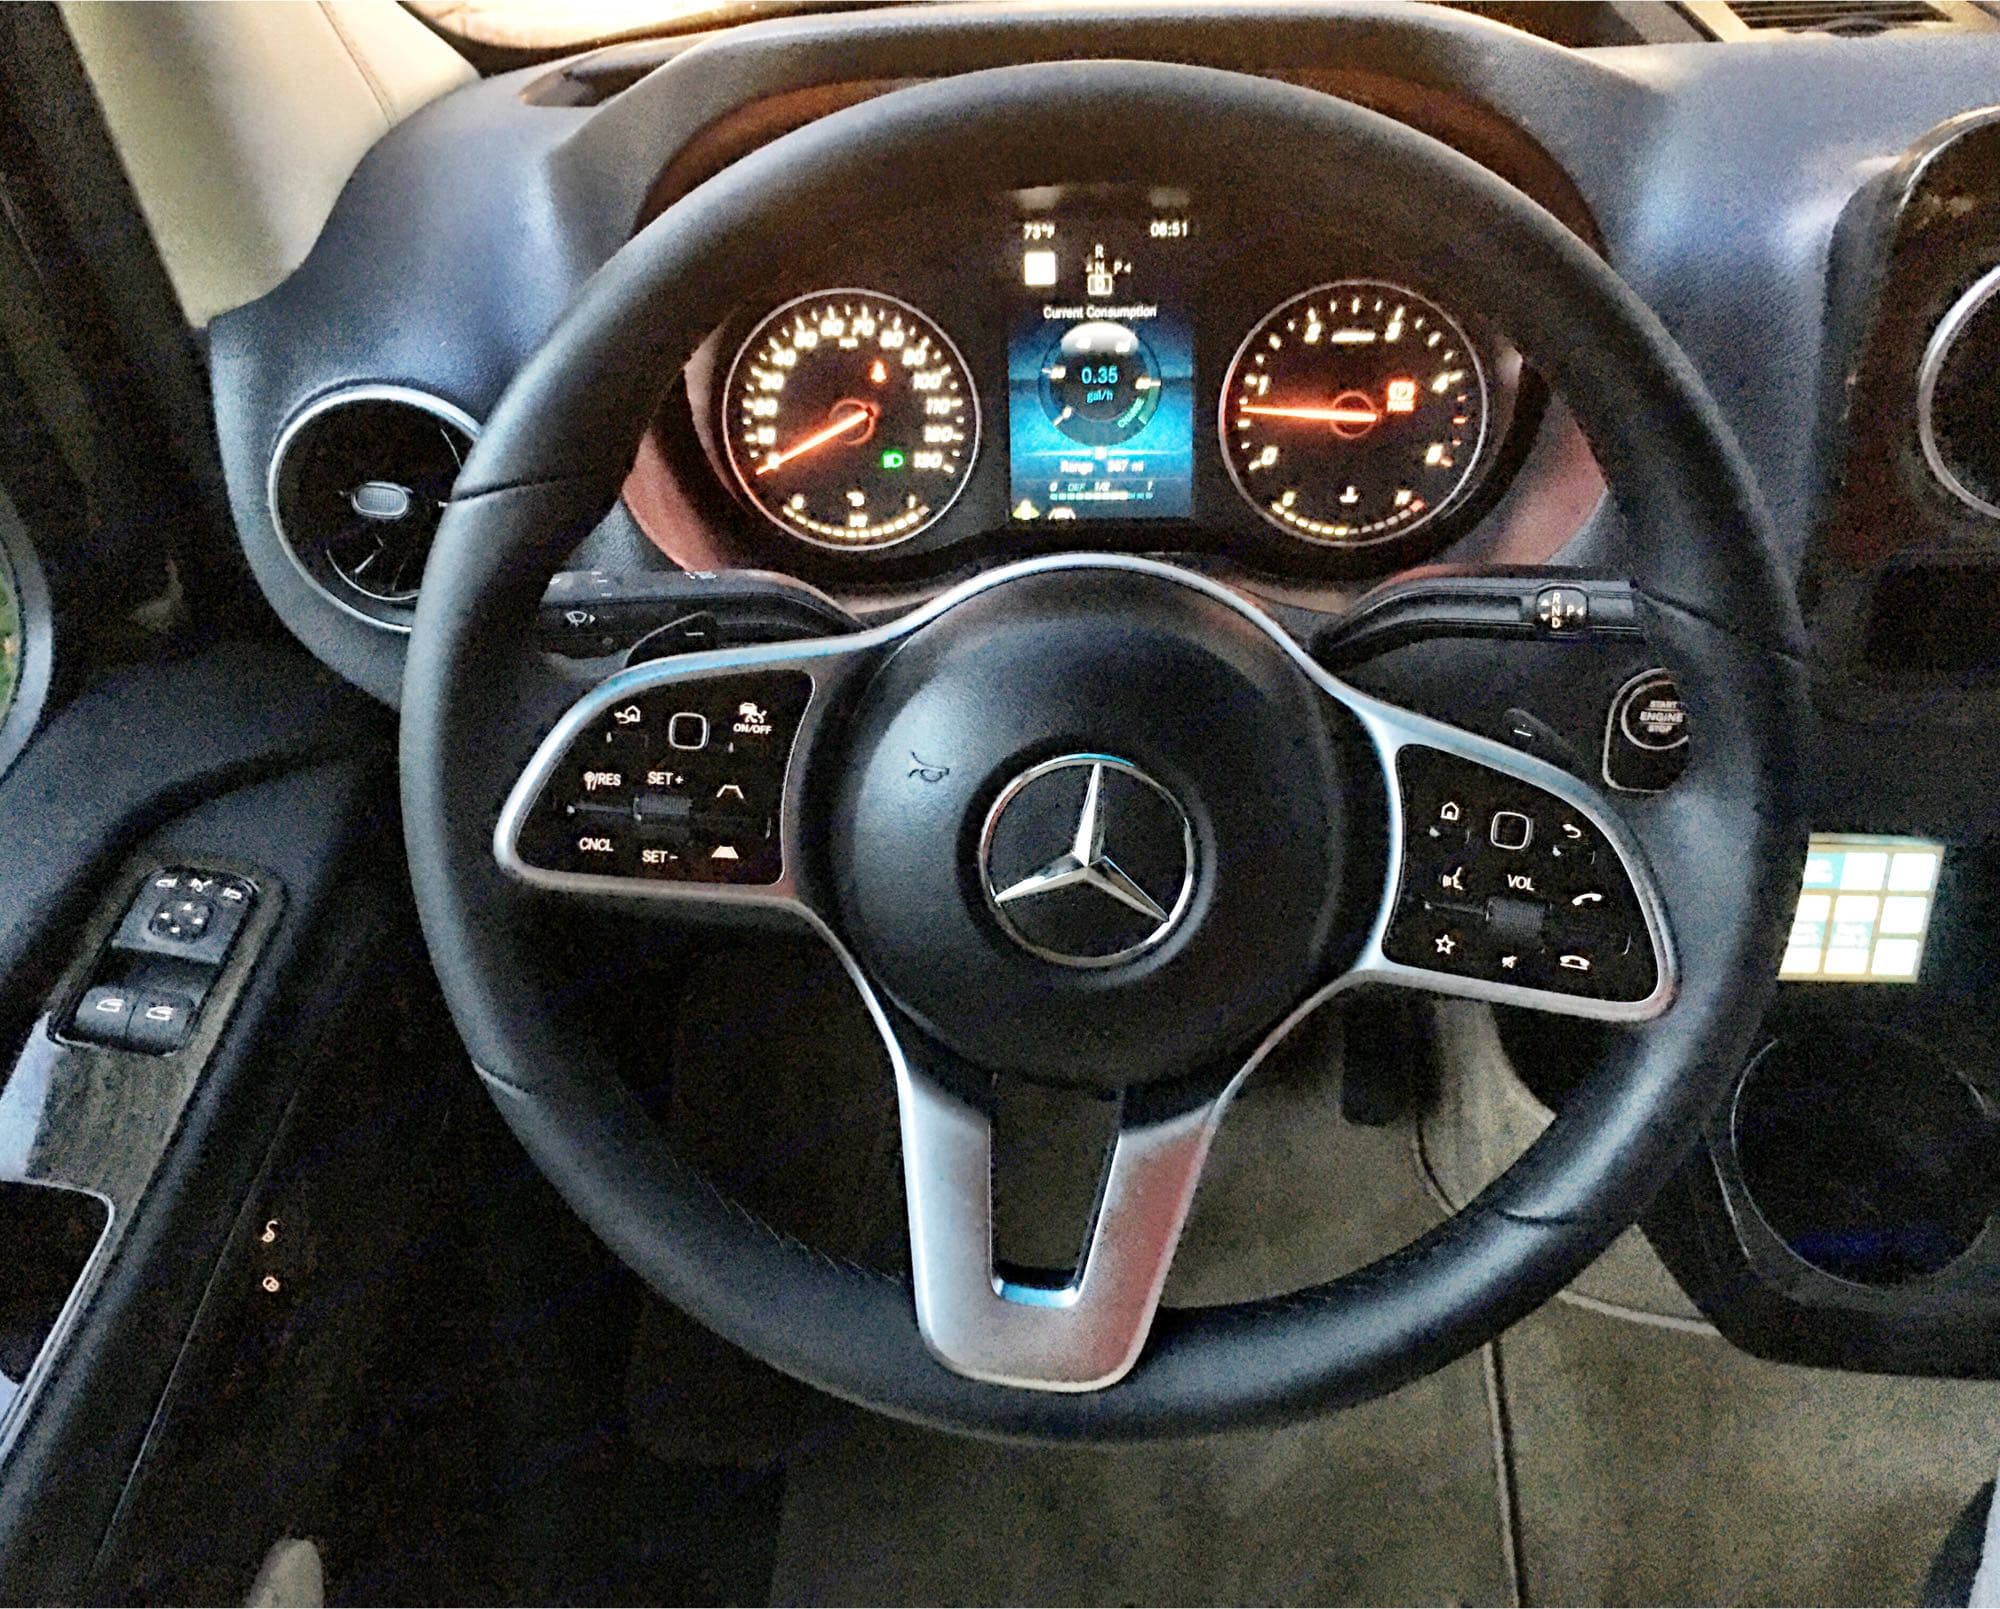 Premium soft leather steering wheel. Ultimate Toys Ultimate Limo 2020